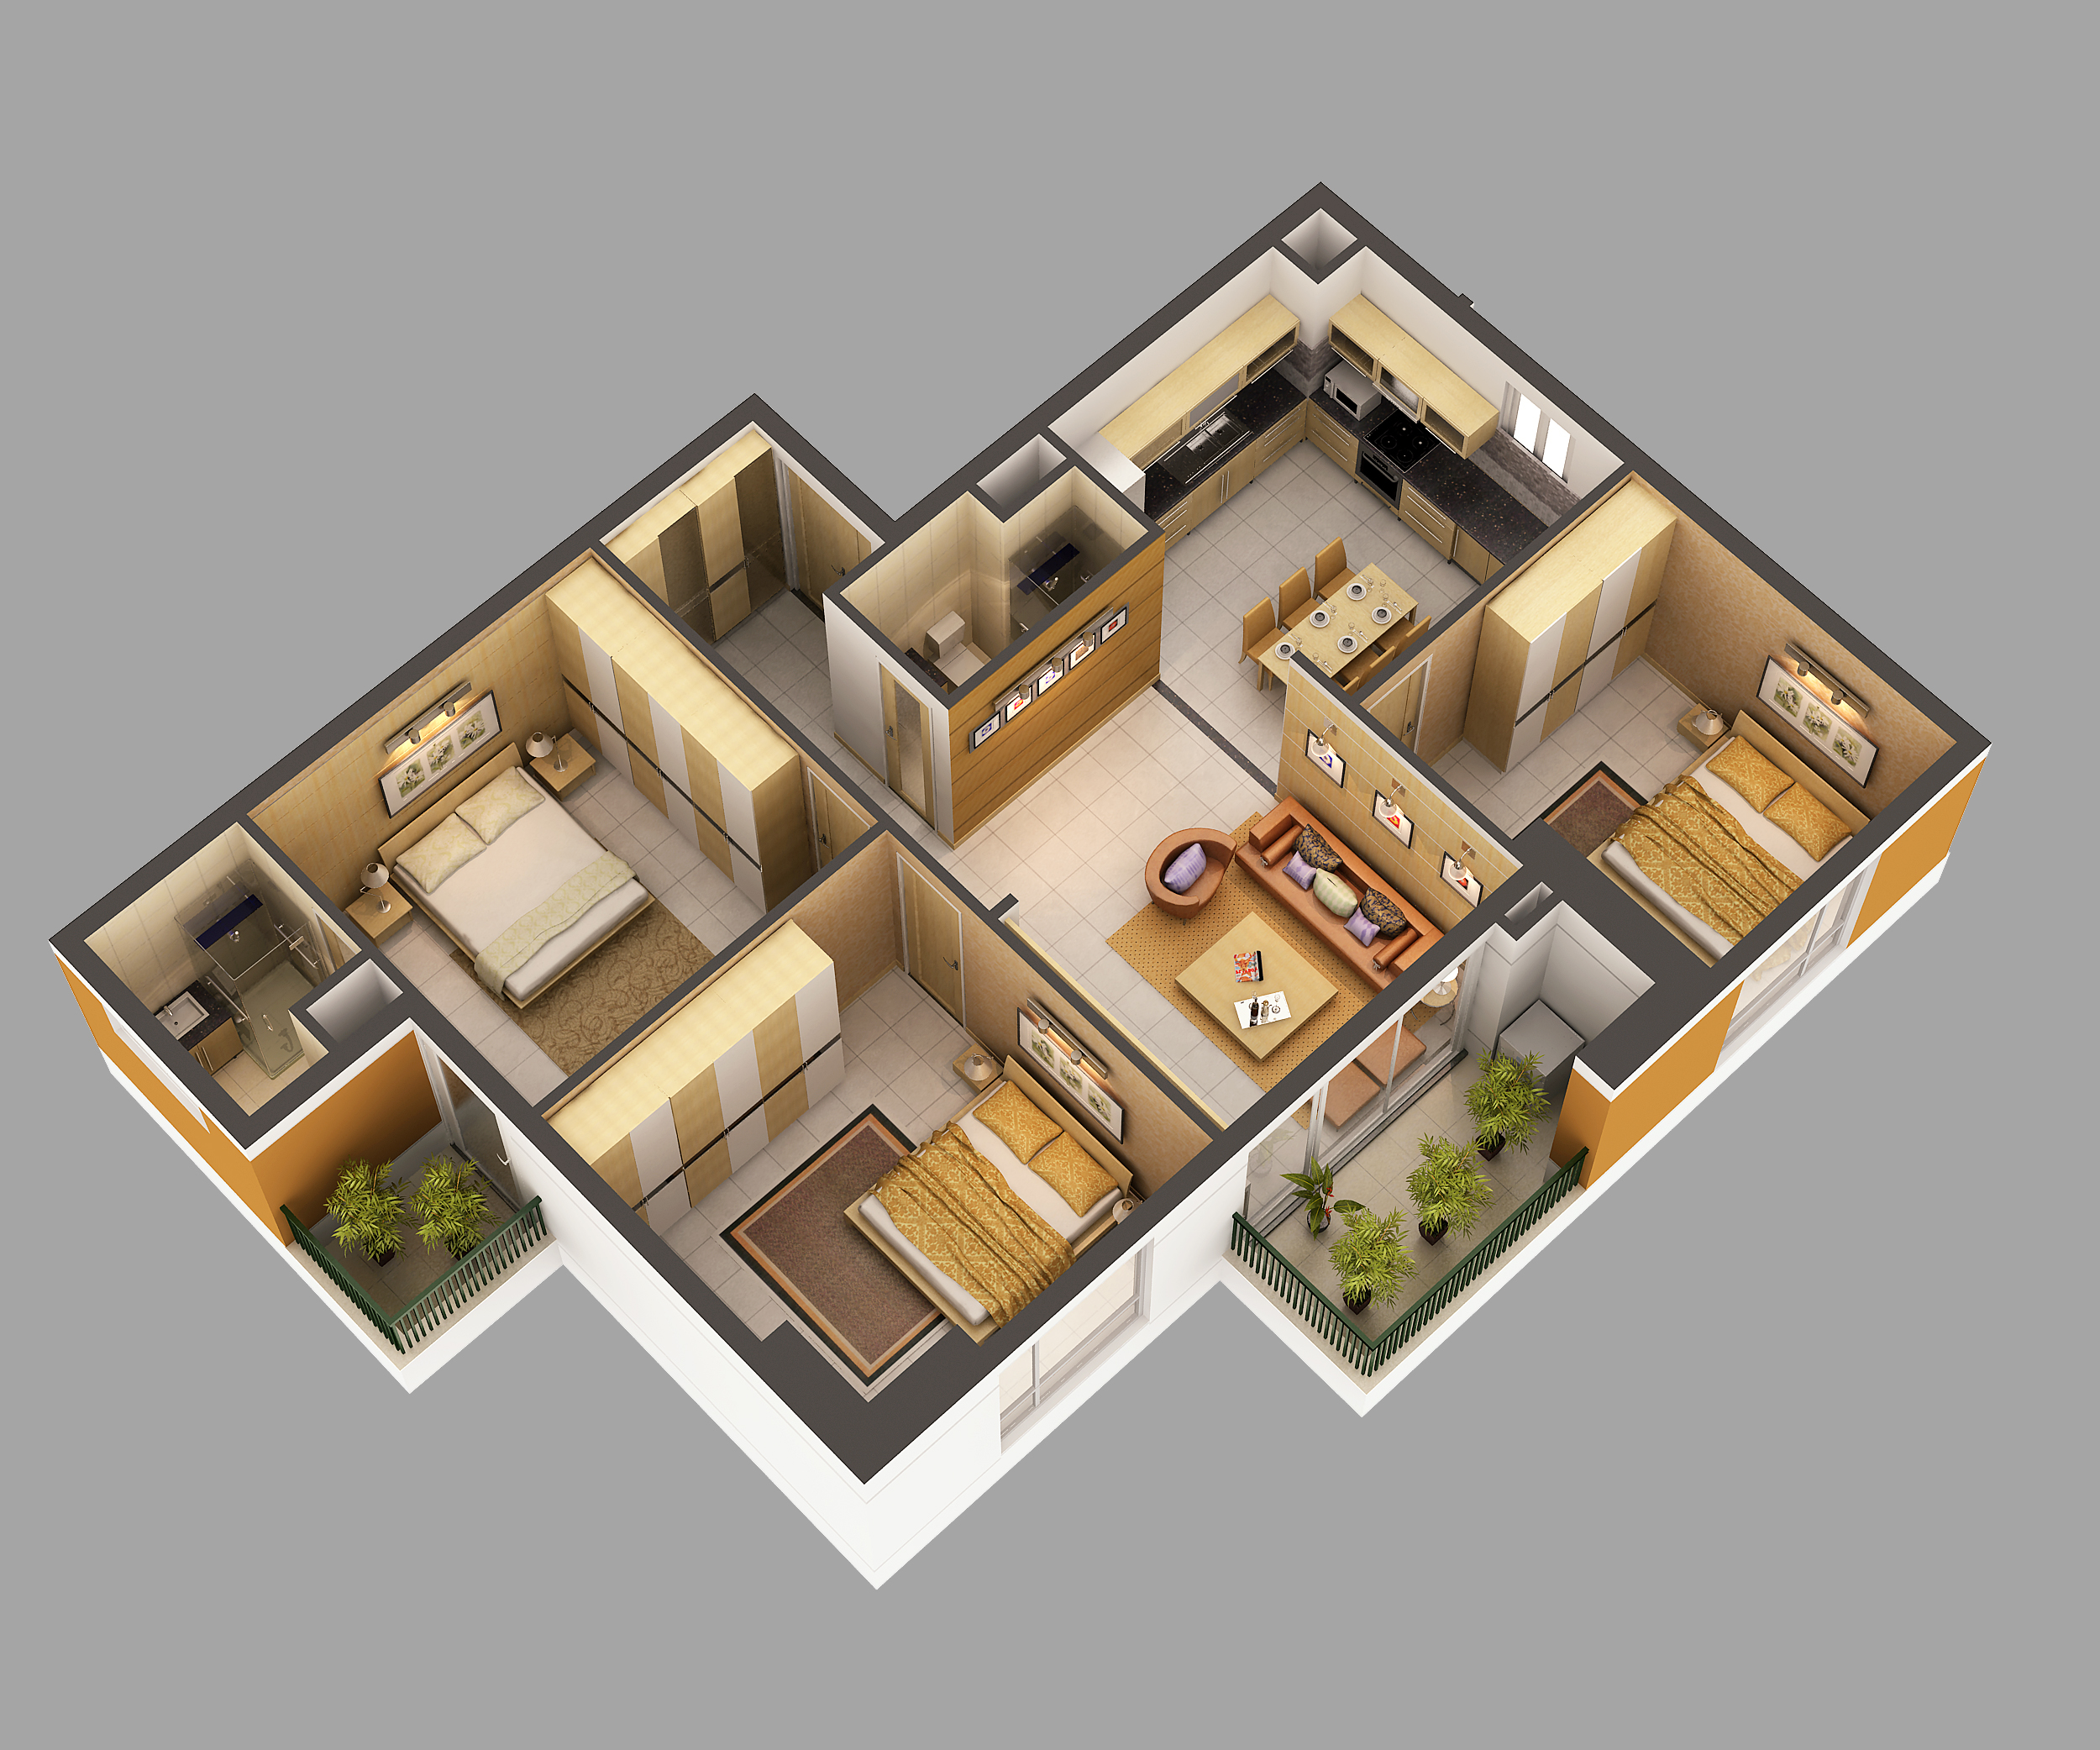 3d model home interior fully furnished 3d model max 1 - 3d Model Home